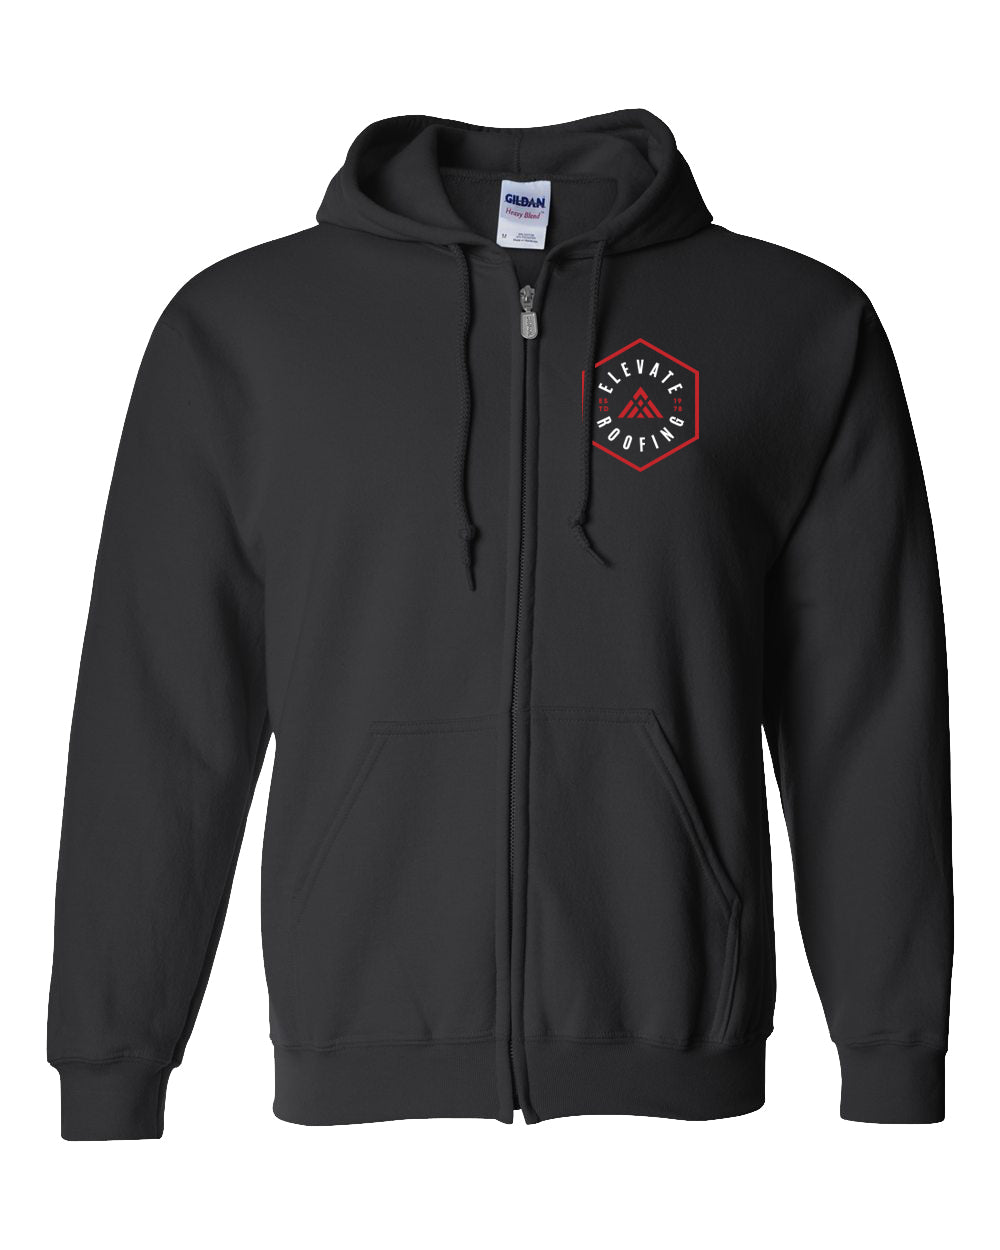 Hexagon Elevate - Heavy Blend Full-Zip Hooded Sweatshirt